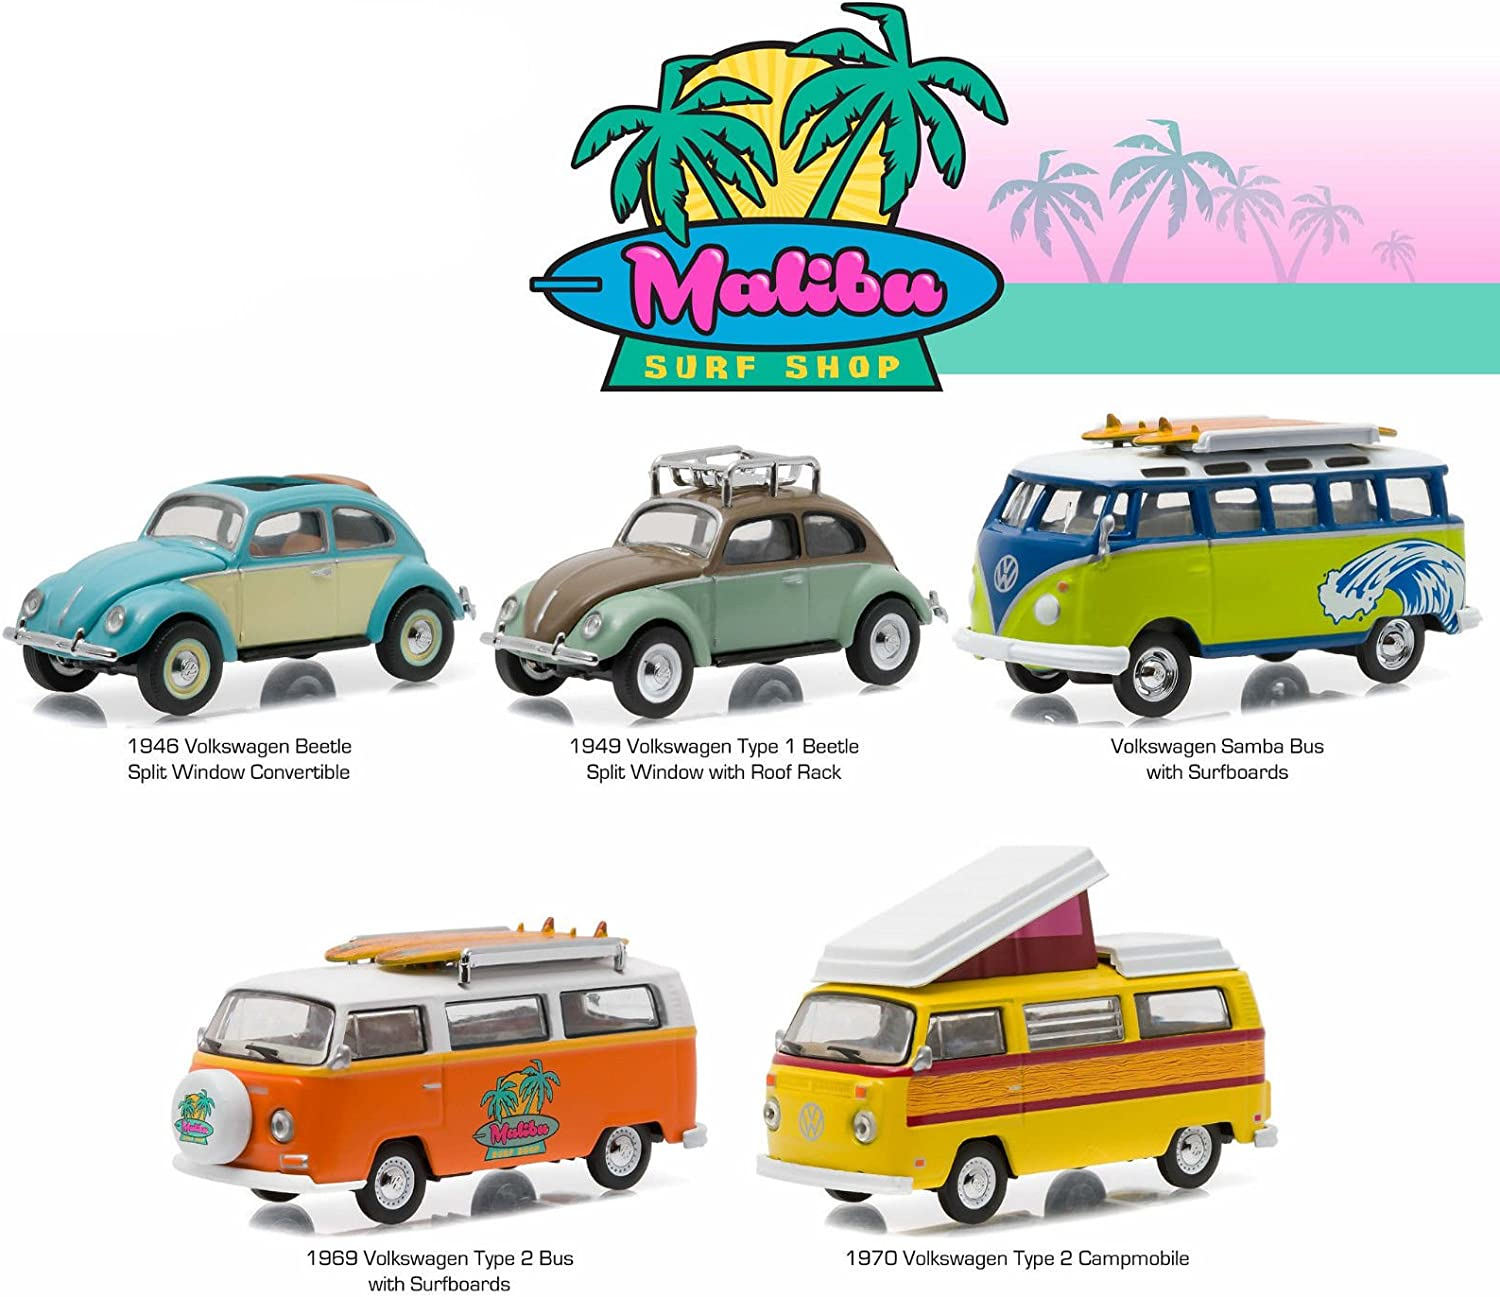 Malibu Surf Shop 5 Cars Motor World Diorama Set 1 64 by Grünlight 58029